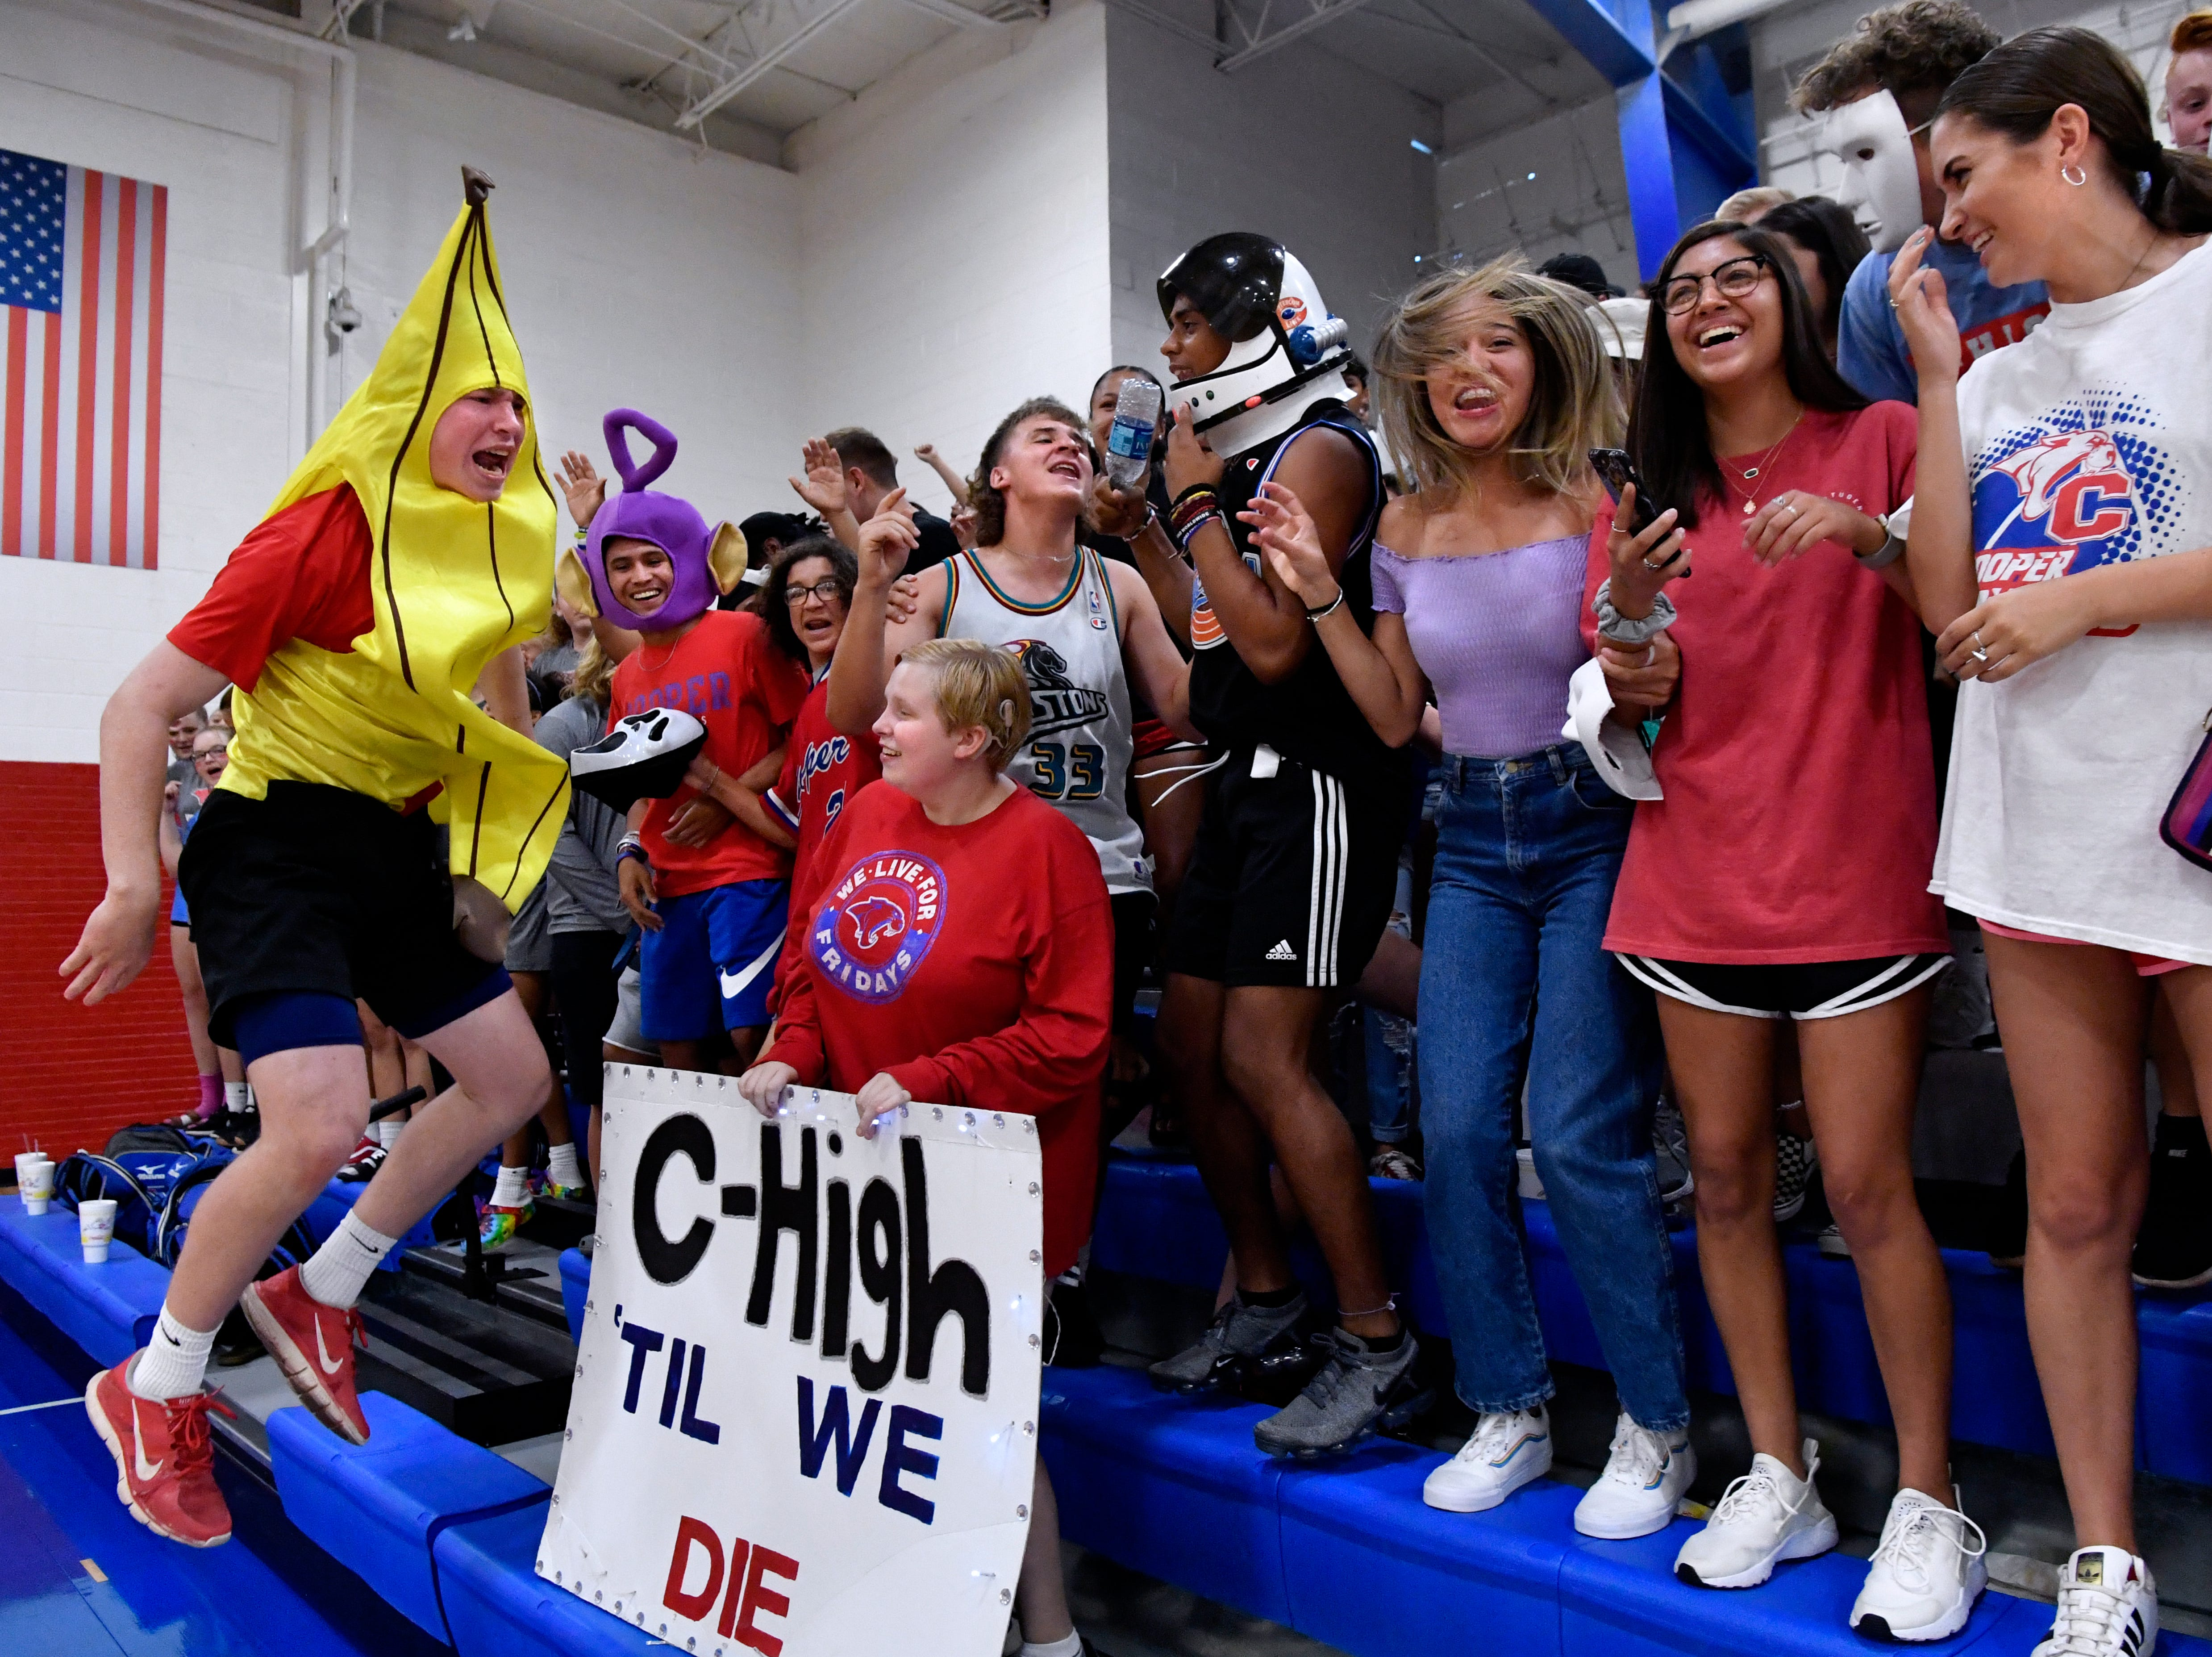 Brady Miller, an incoming Cooper High School sophomore, cheers the Lady Coogs Tuesday August 7, 2018 with his classmates while wearing a borrowed banana costume. Abilene High won the crosstown volleyball game against Cooper in the best-of-five match, 25-21, 16-25, 25-20, 17-25, 15-7.